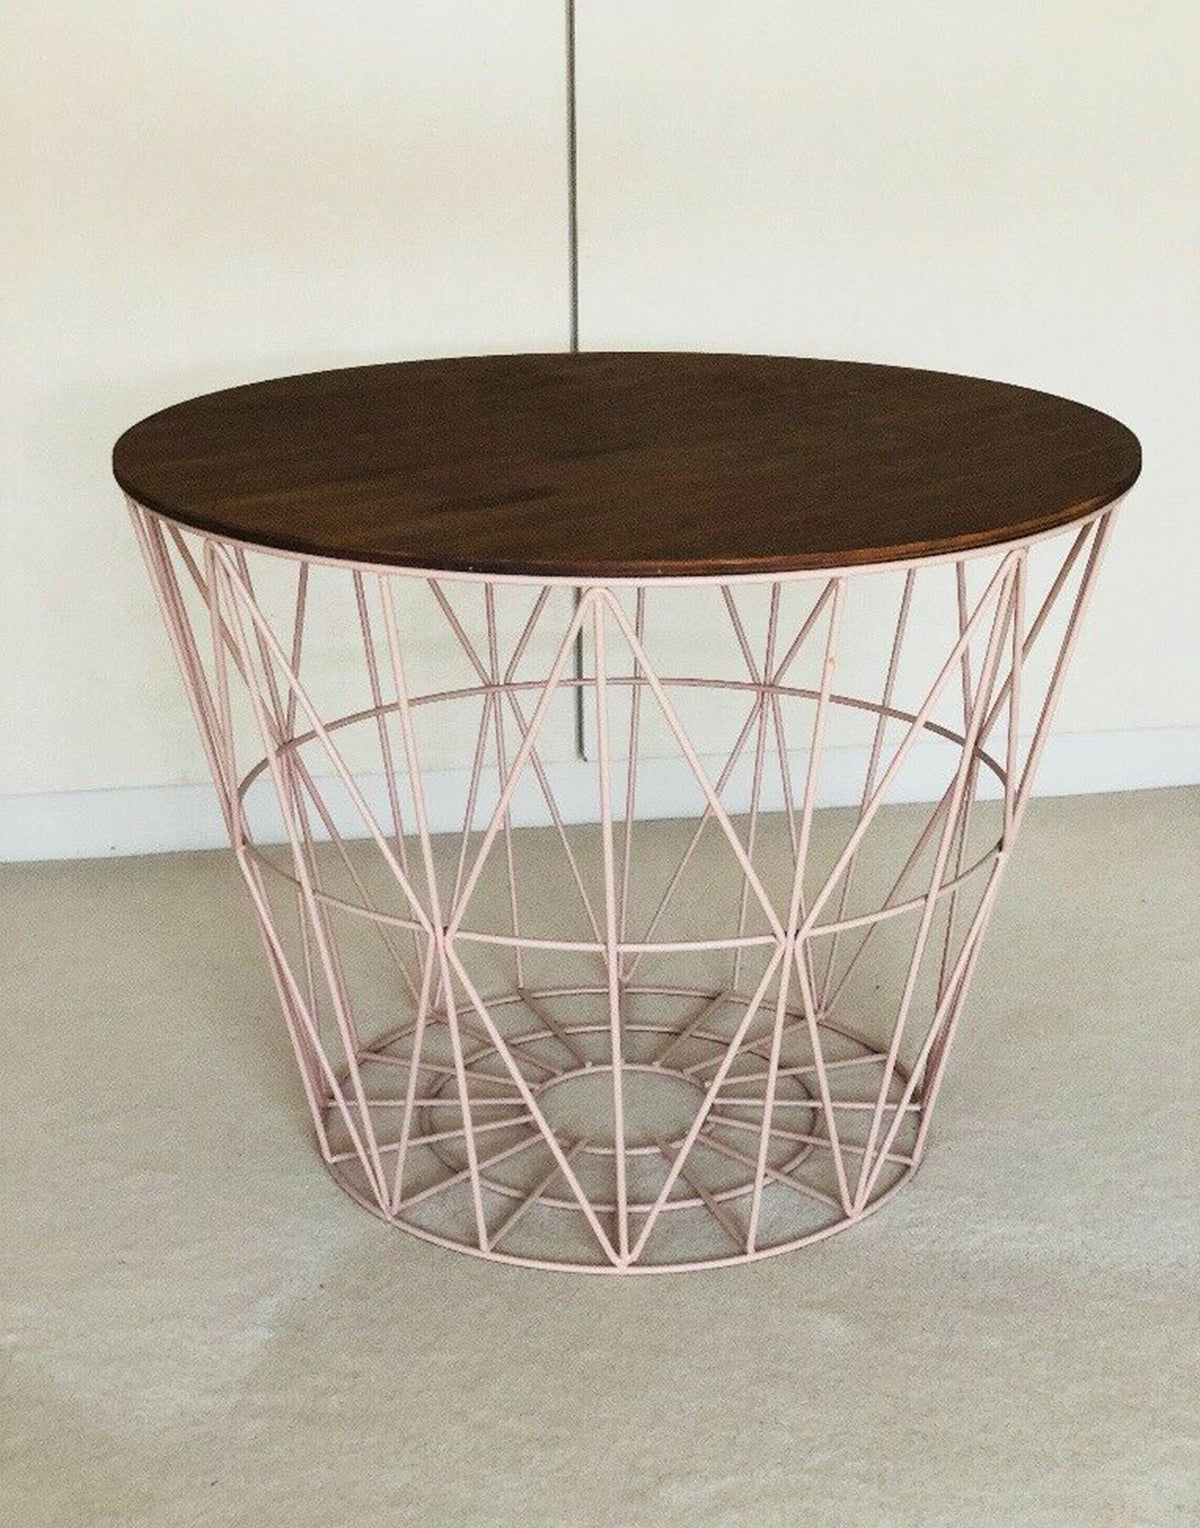 Picture of: Ferm Living Wire Basket Top Large Smoked Oak E Store333